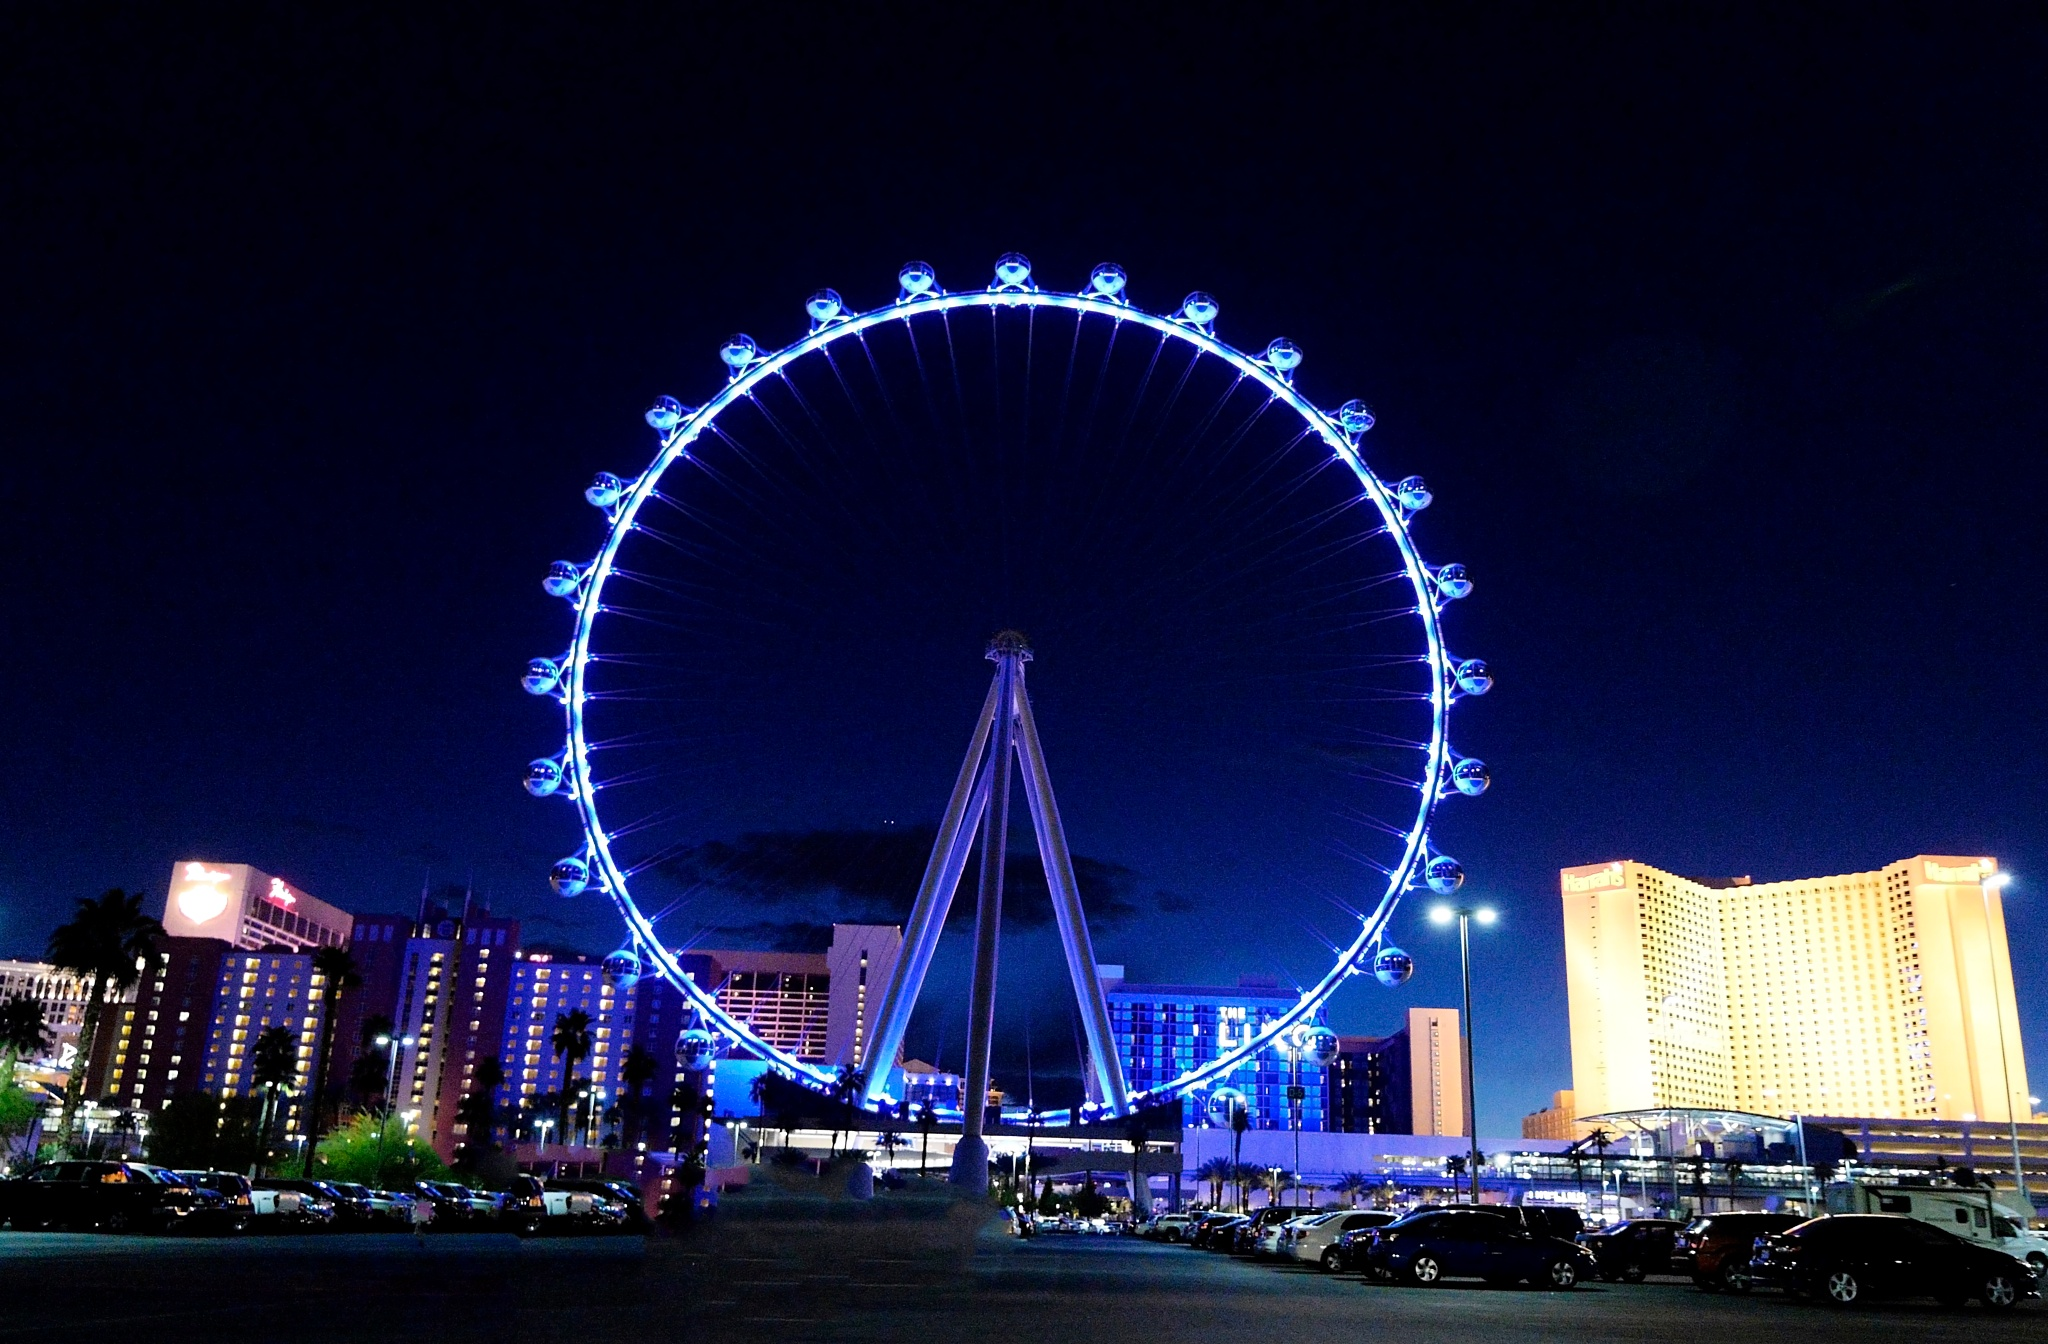 World's Tallest Observation Wheel  by Transfiguracion Images